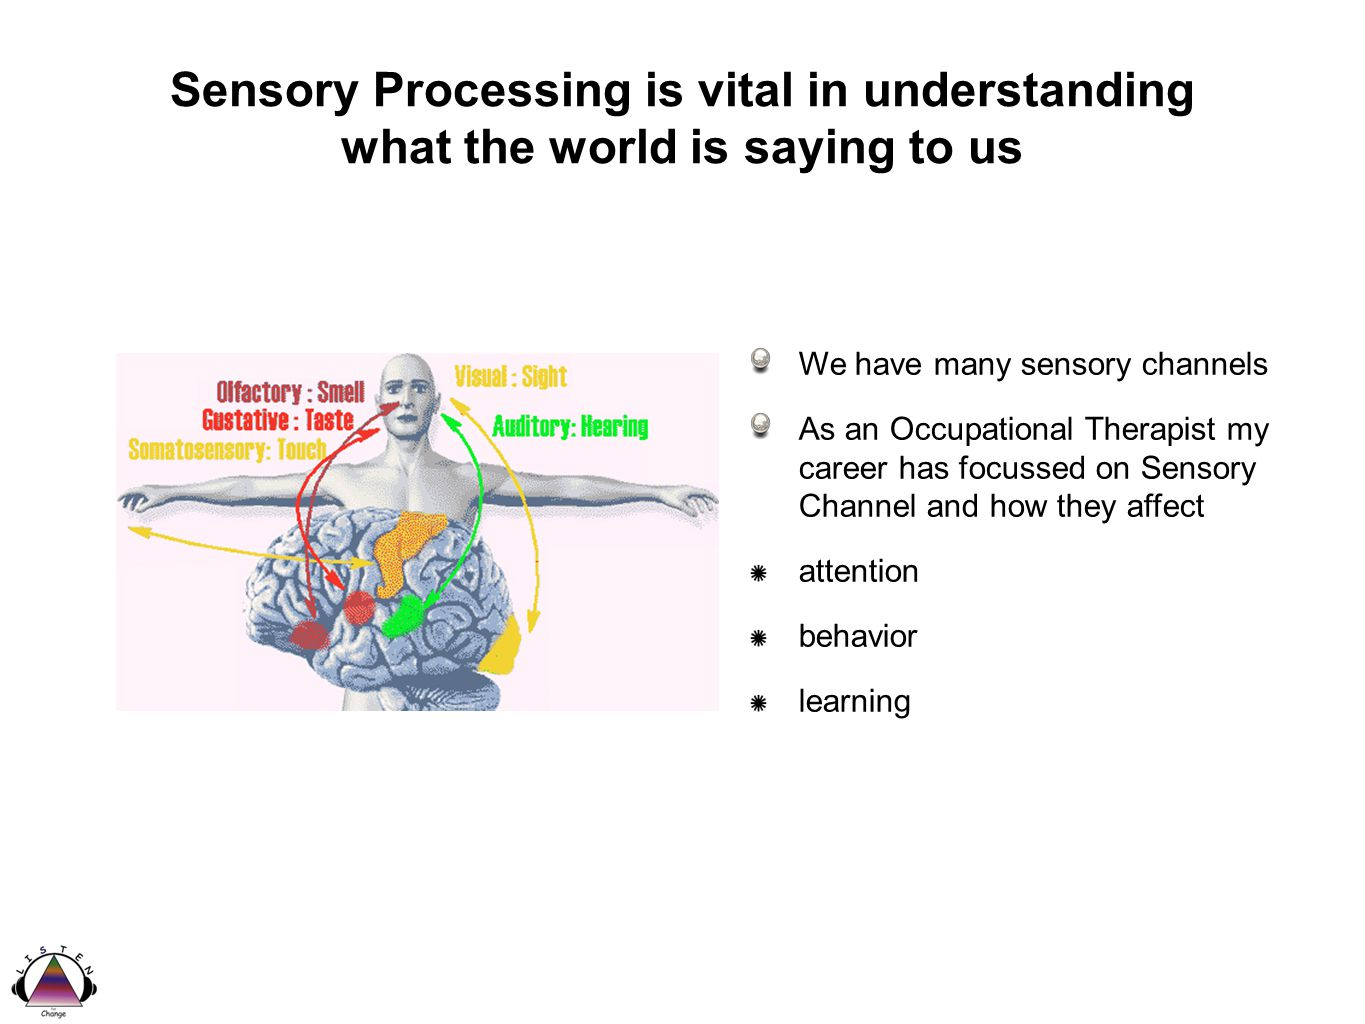 Sensory Processing is vital in understanding what the world is saying to us We have many sensory channels As an Occupational Therapist my career has focussed on Sensory Channel and how they affect attention behavior learning